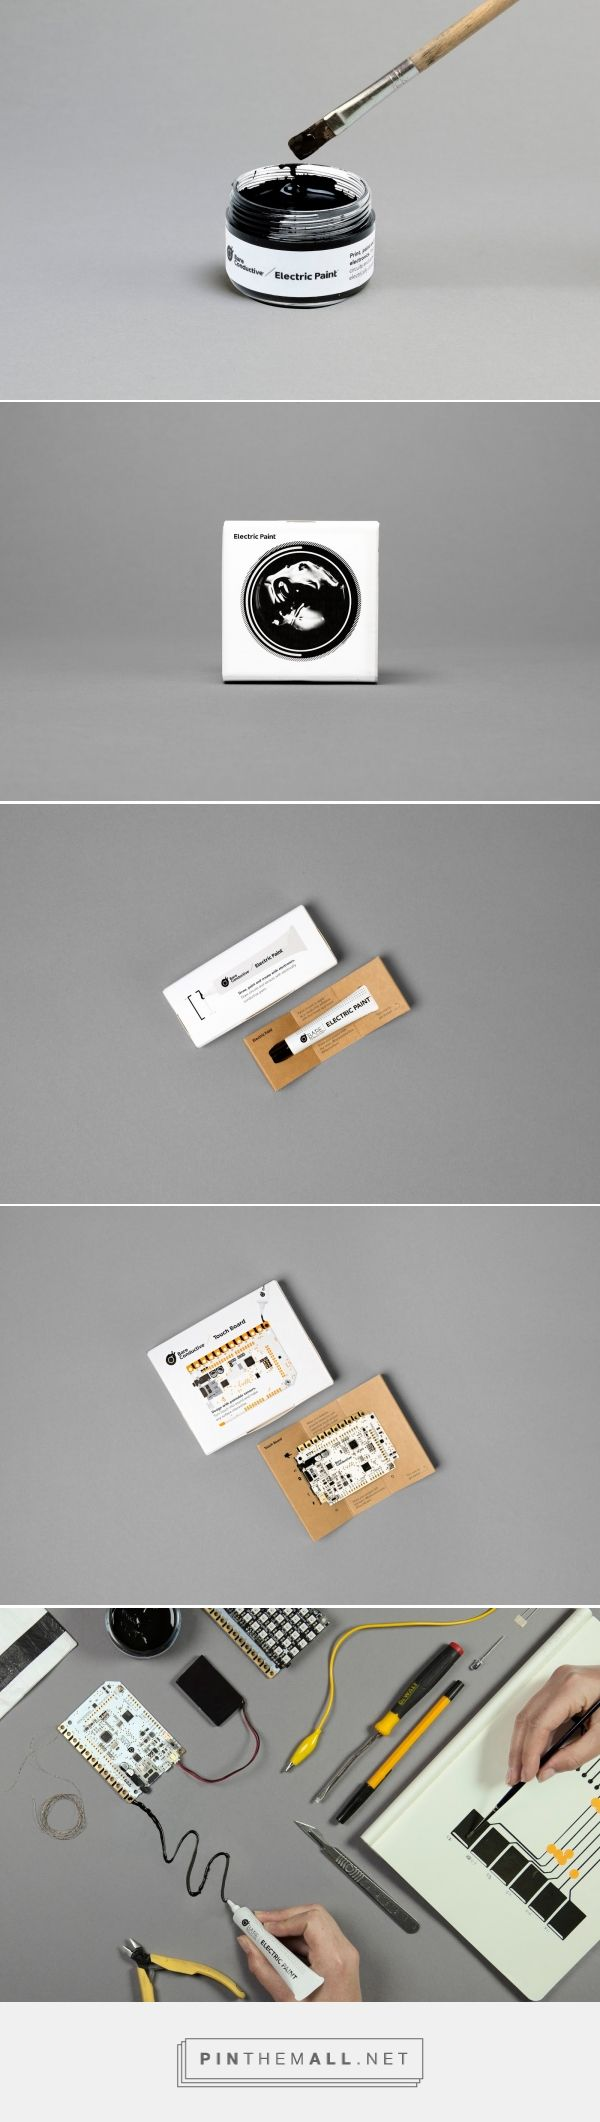 Bare Conductive - Packaging of the World - Creative Package Design Gallery - http://www.packagingoftheworld.com/2017/05/bare-conductive.html